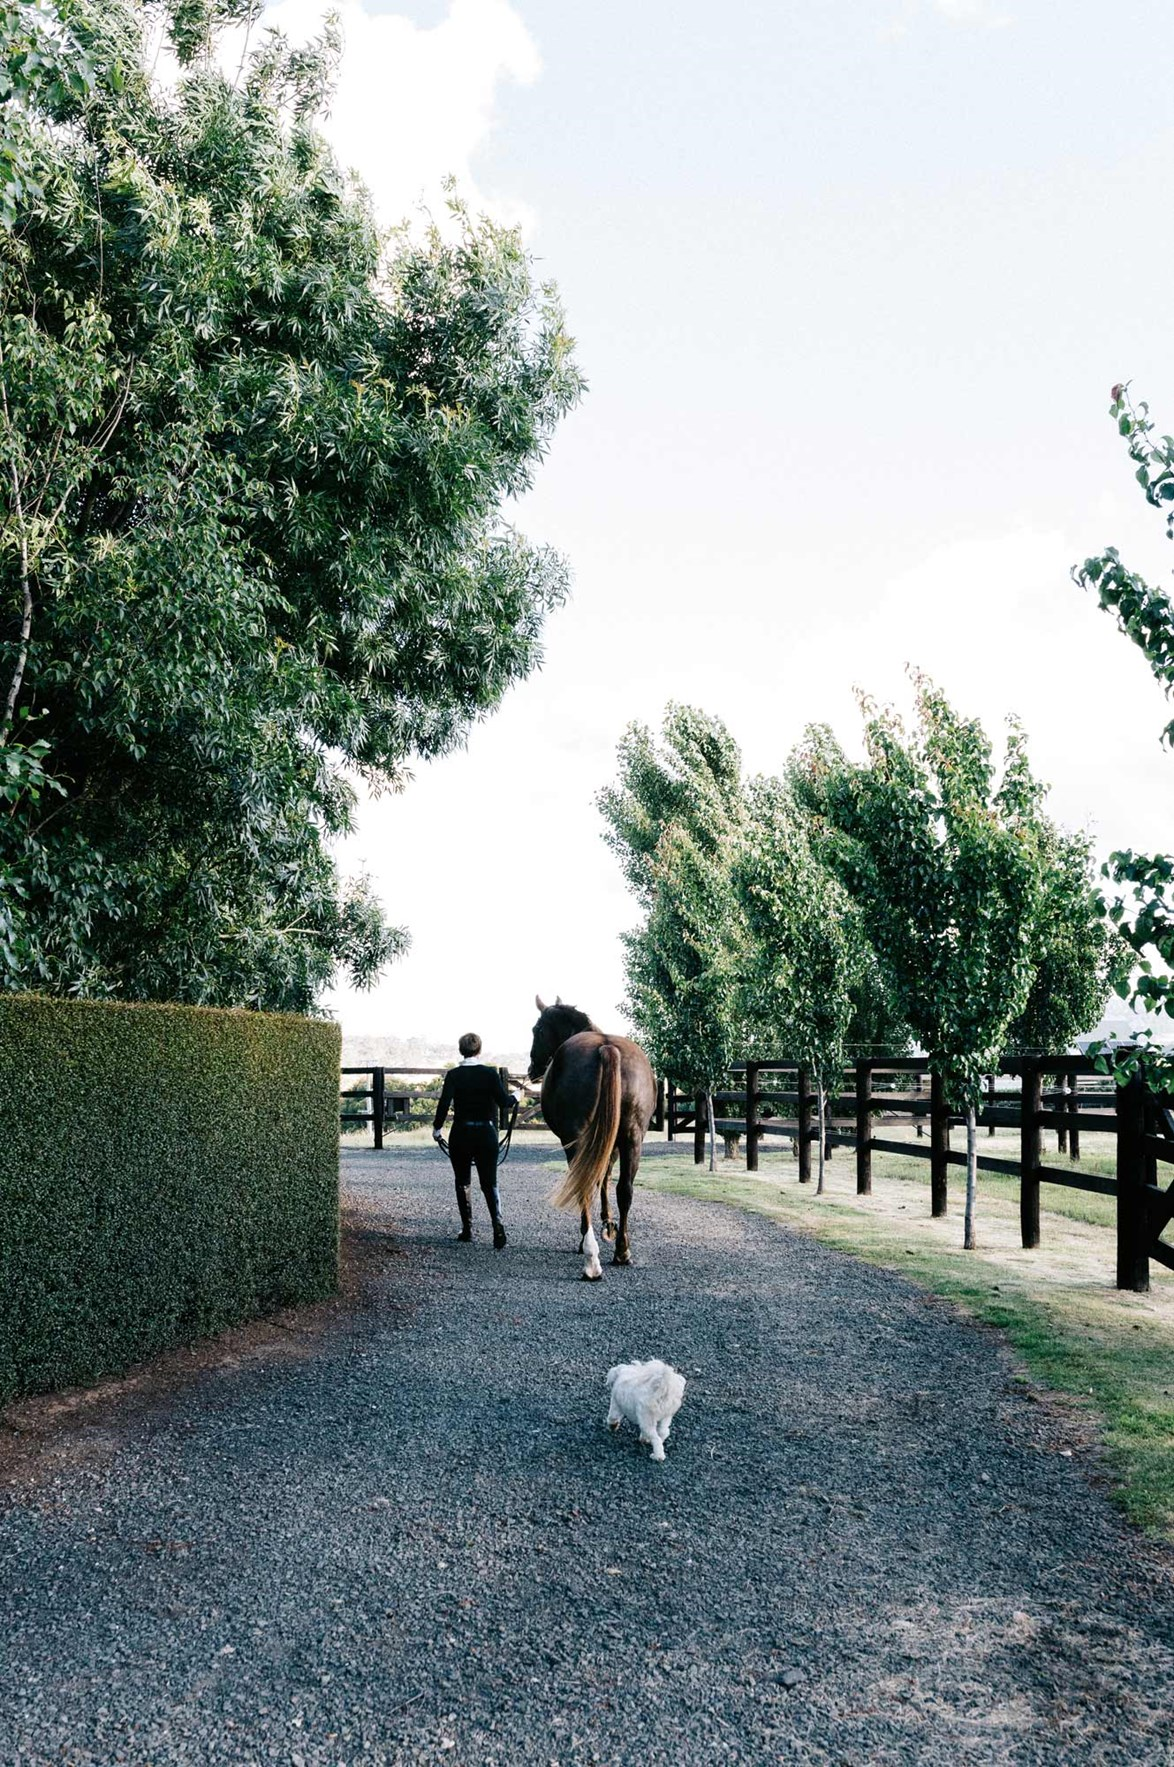 """Harry the warmblood horse walks with his owner Meaghan Willis, an accomplished dressage rider, along a gravel road at [Jimsbury Park in Newham](https://www.homestolove.com.au/horse-lovers-formal-garden-near-hanging-rock-vic-14054